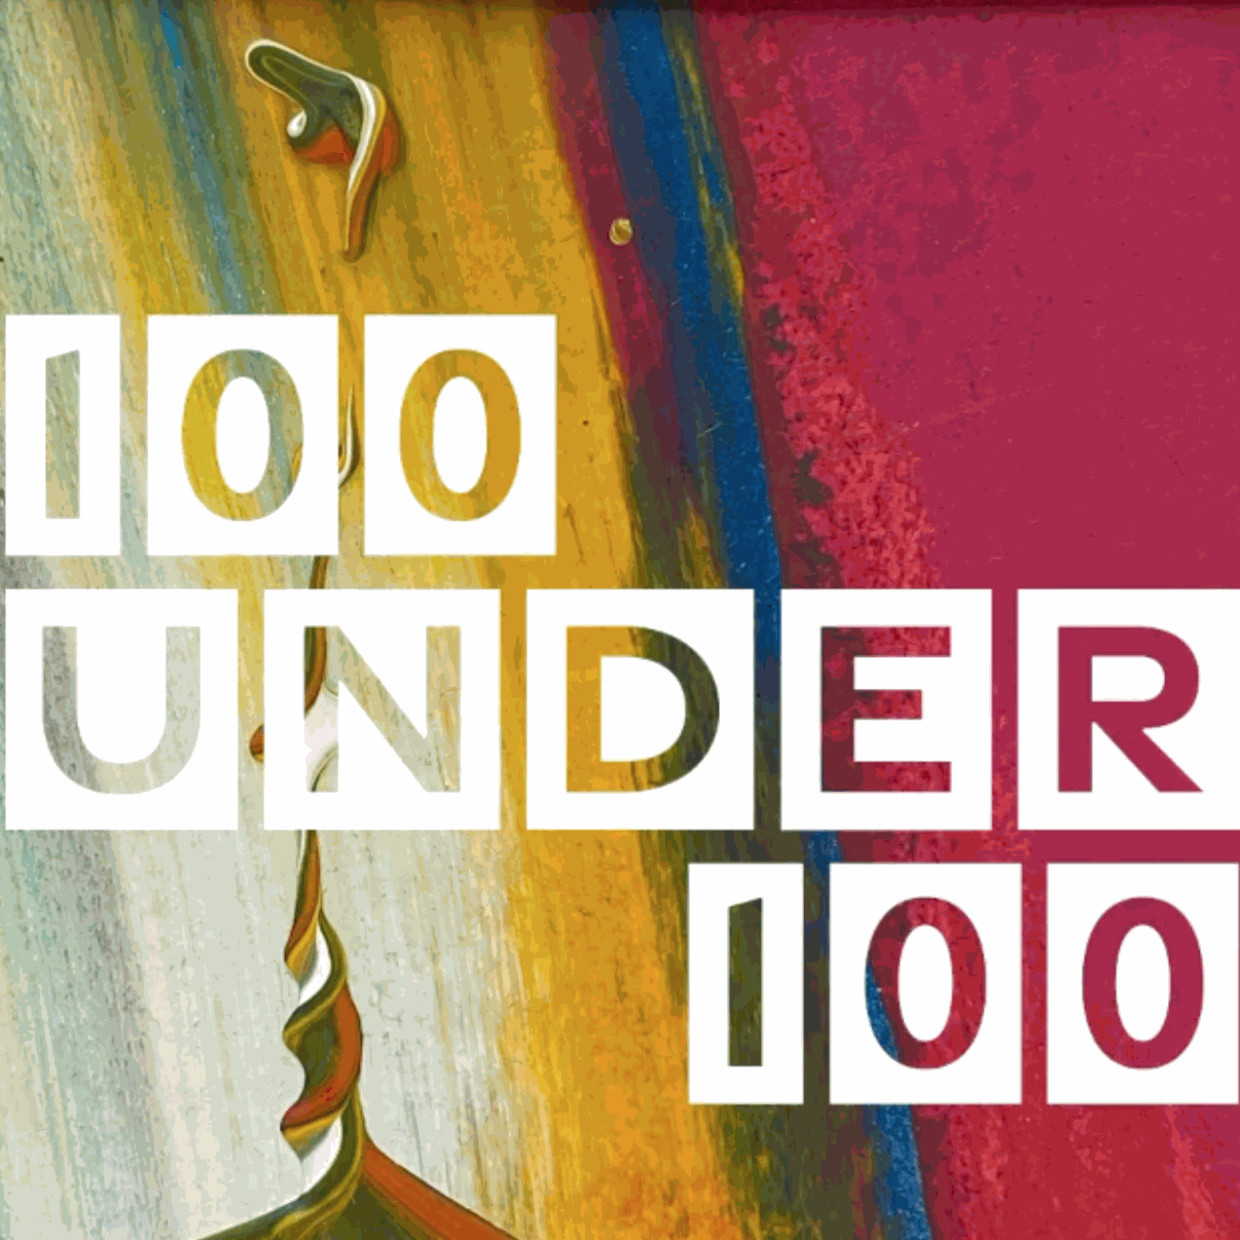 100 under £100, Making art collecting more affordable - small original paintings for under £100